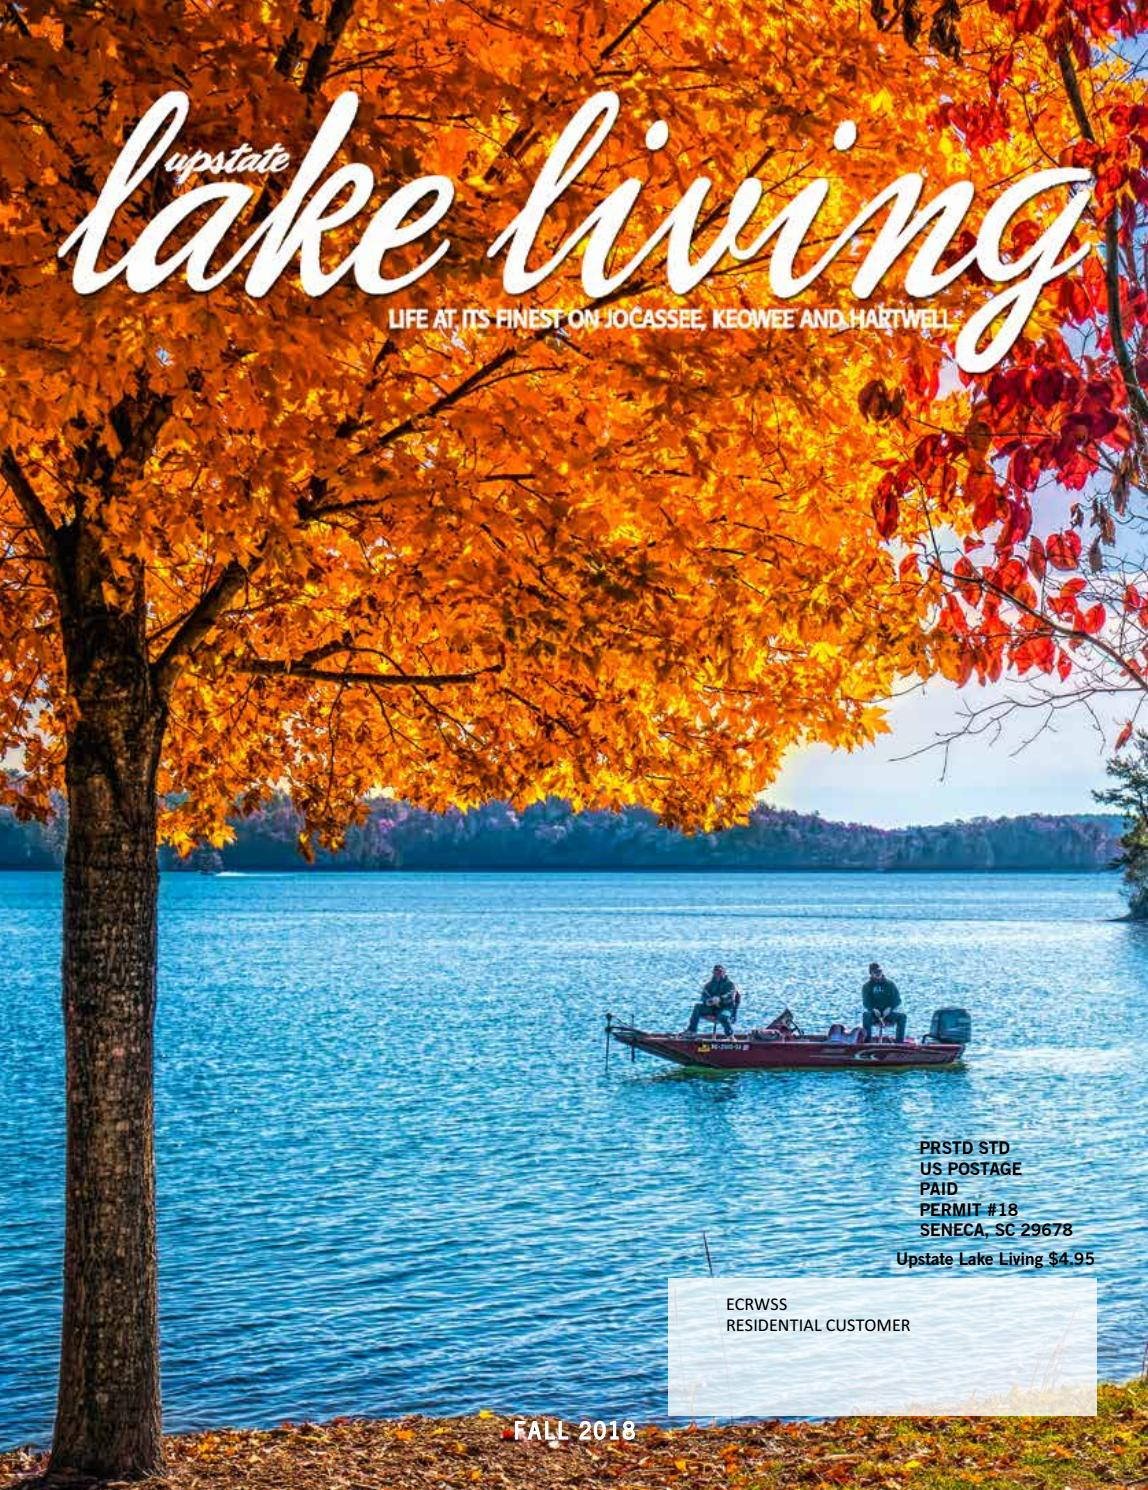 1de9d2ee2f Upstate Lake Living - Fall 2018 by EDWARDS PUBLICATIONS - issuu